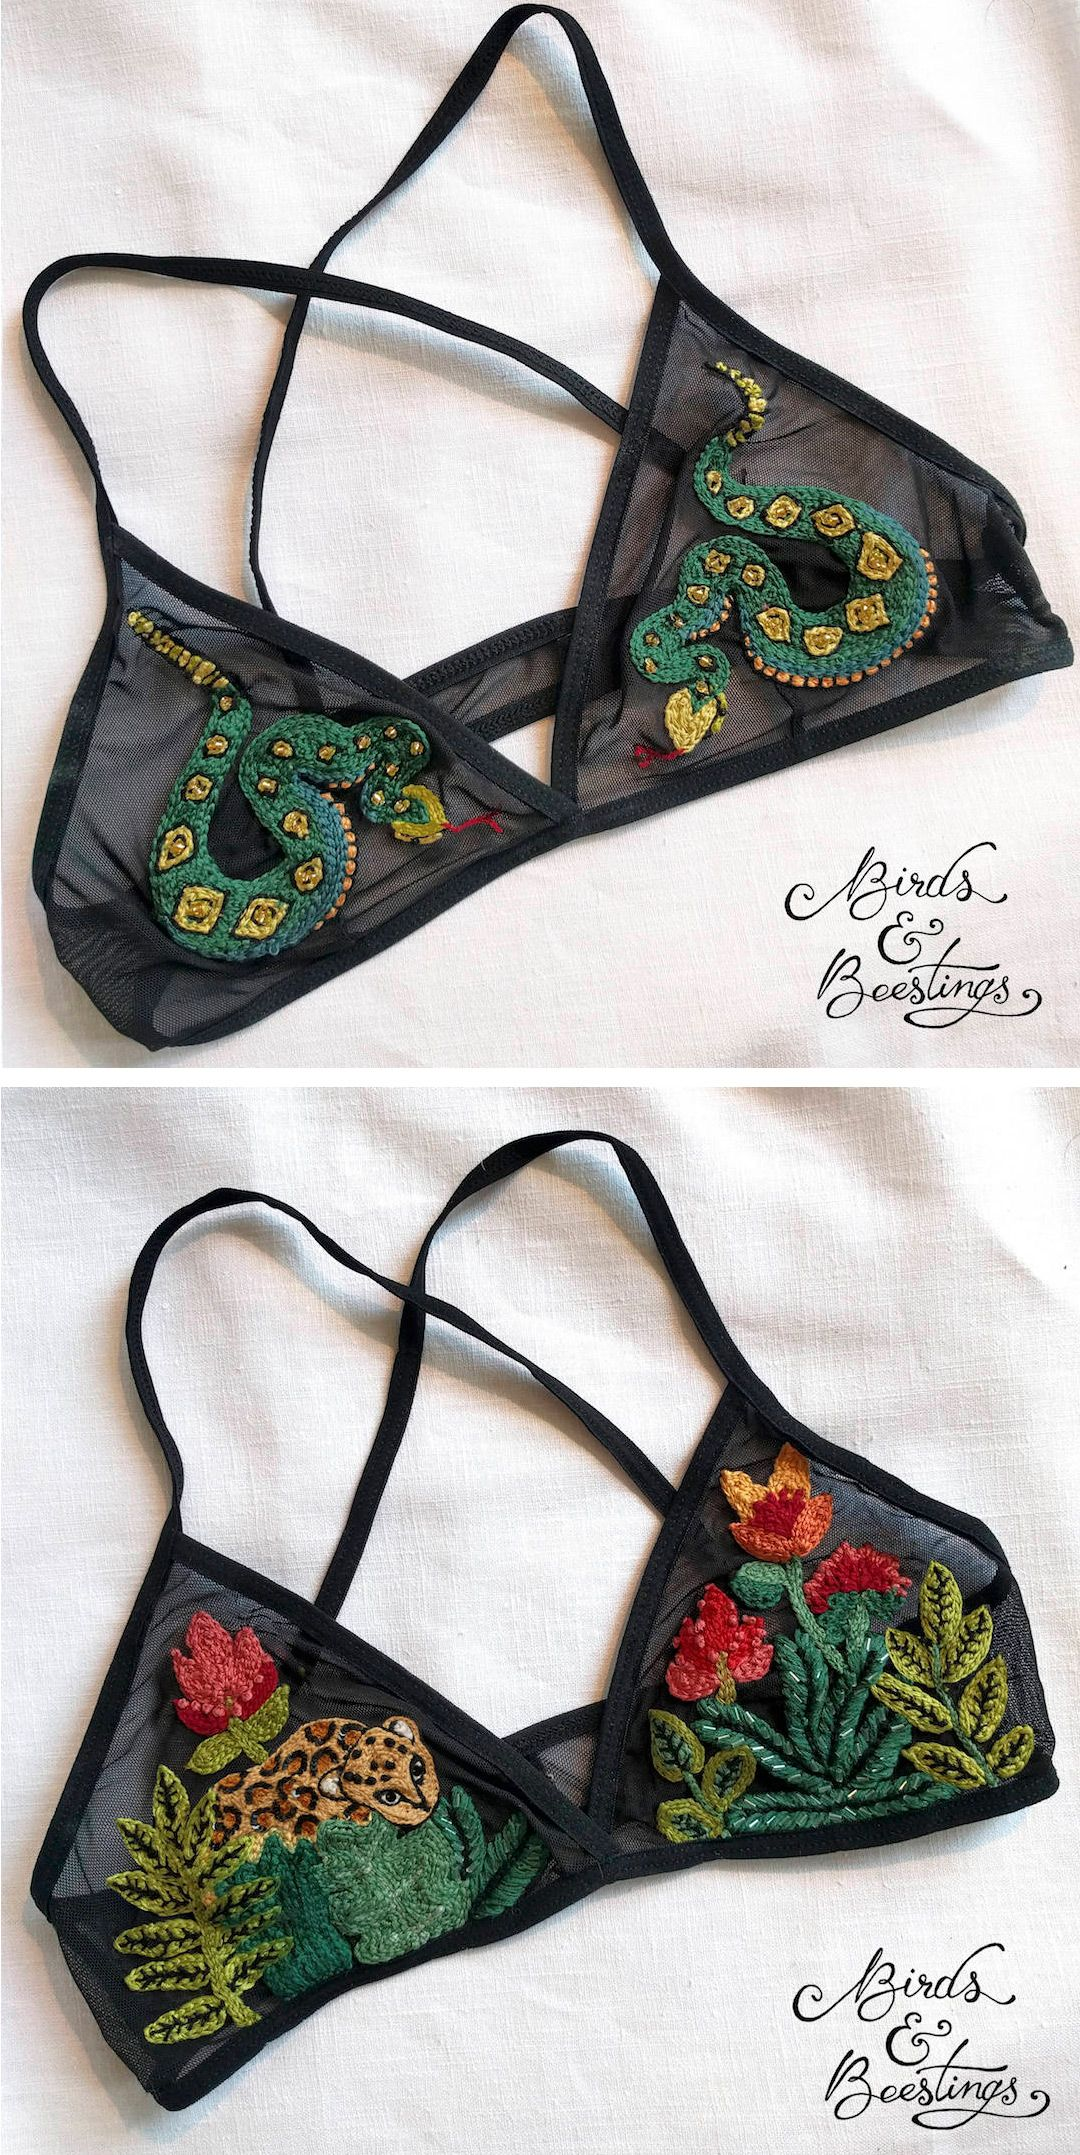 207a146e59 Embroidered bralettes by Birds   Beestings    bespoke bras    bespoke  fashion    hand embroidery